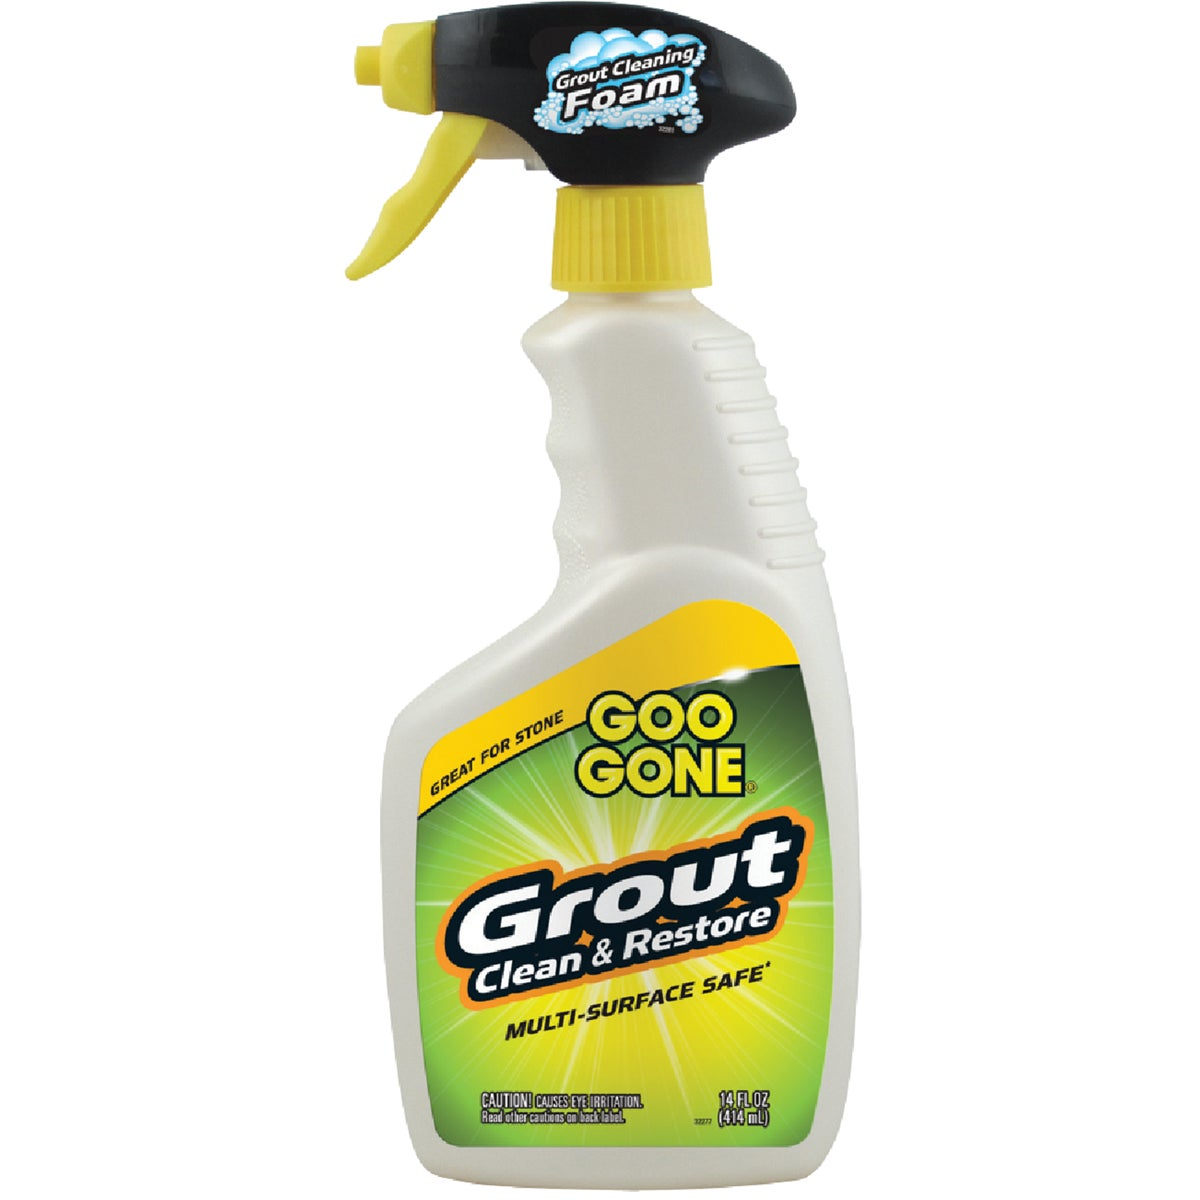 14Oz Grout Clean&Restore